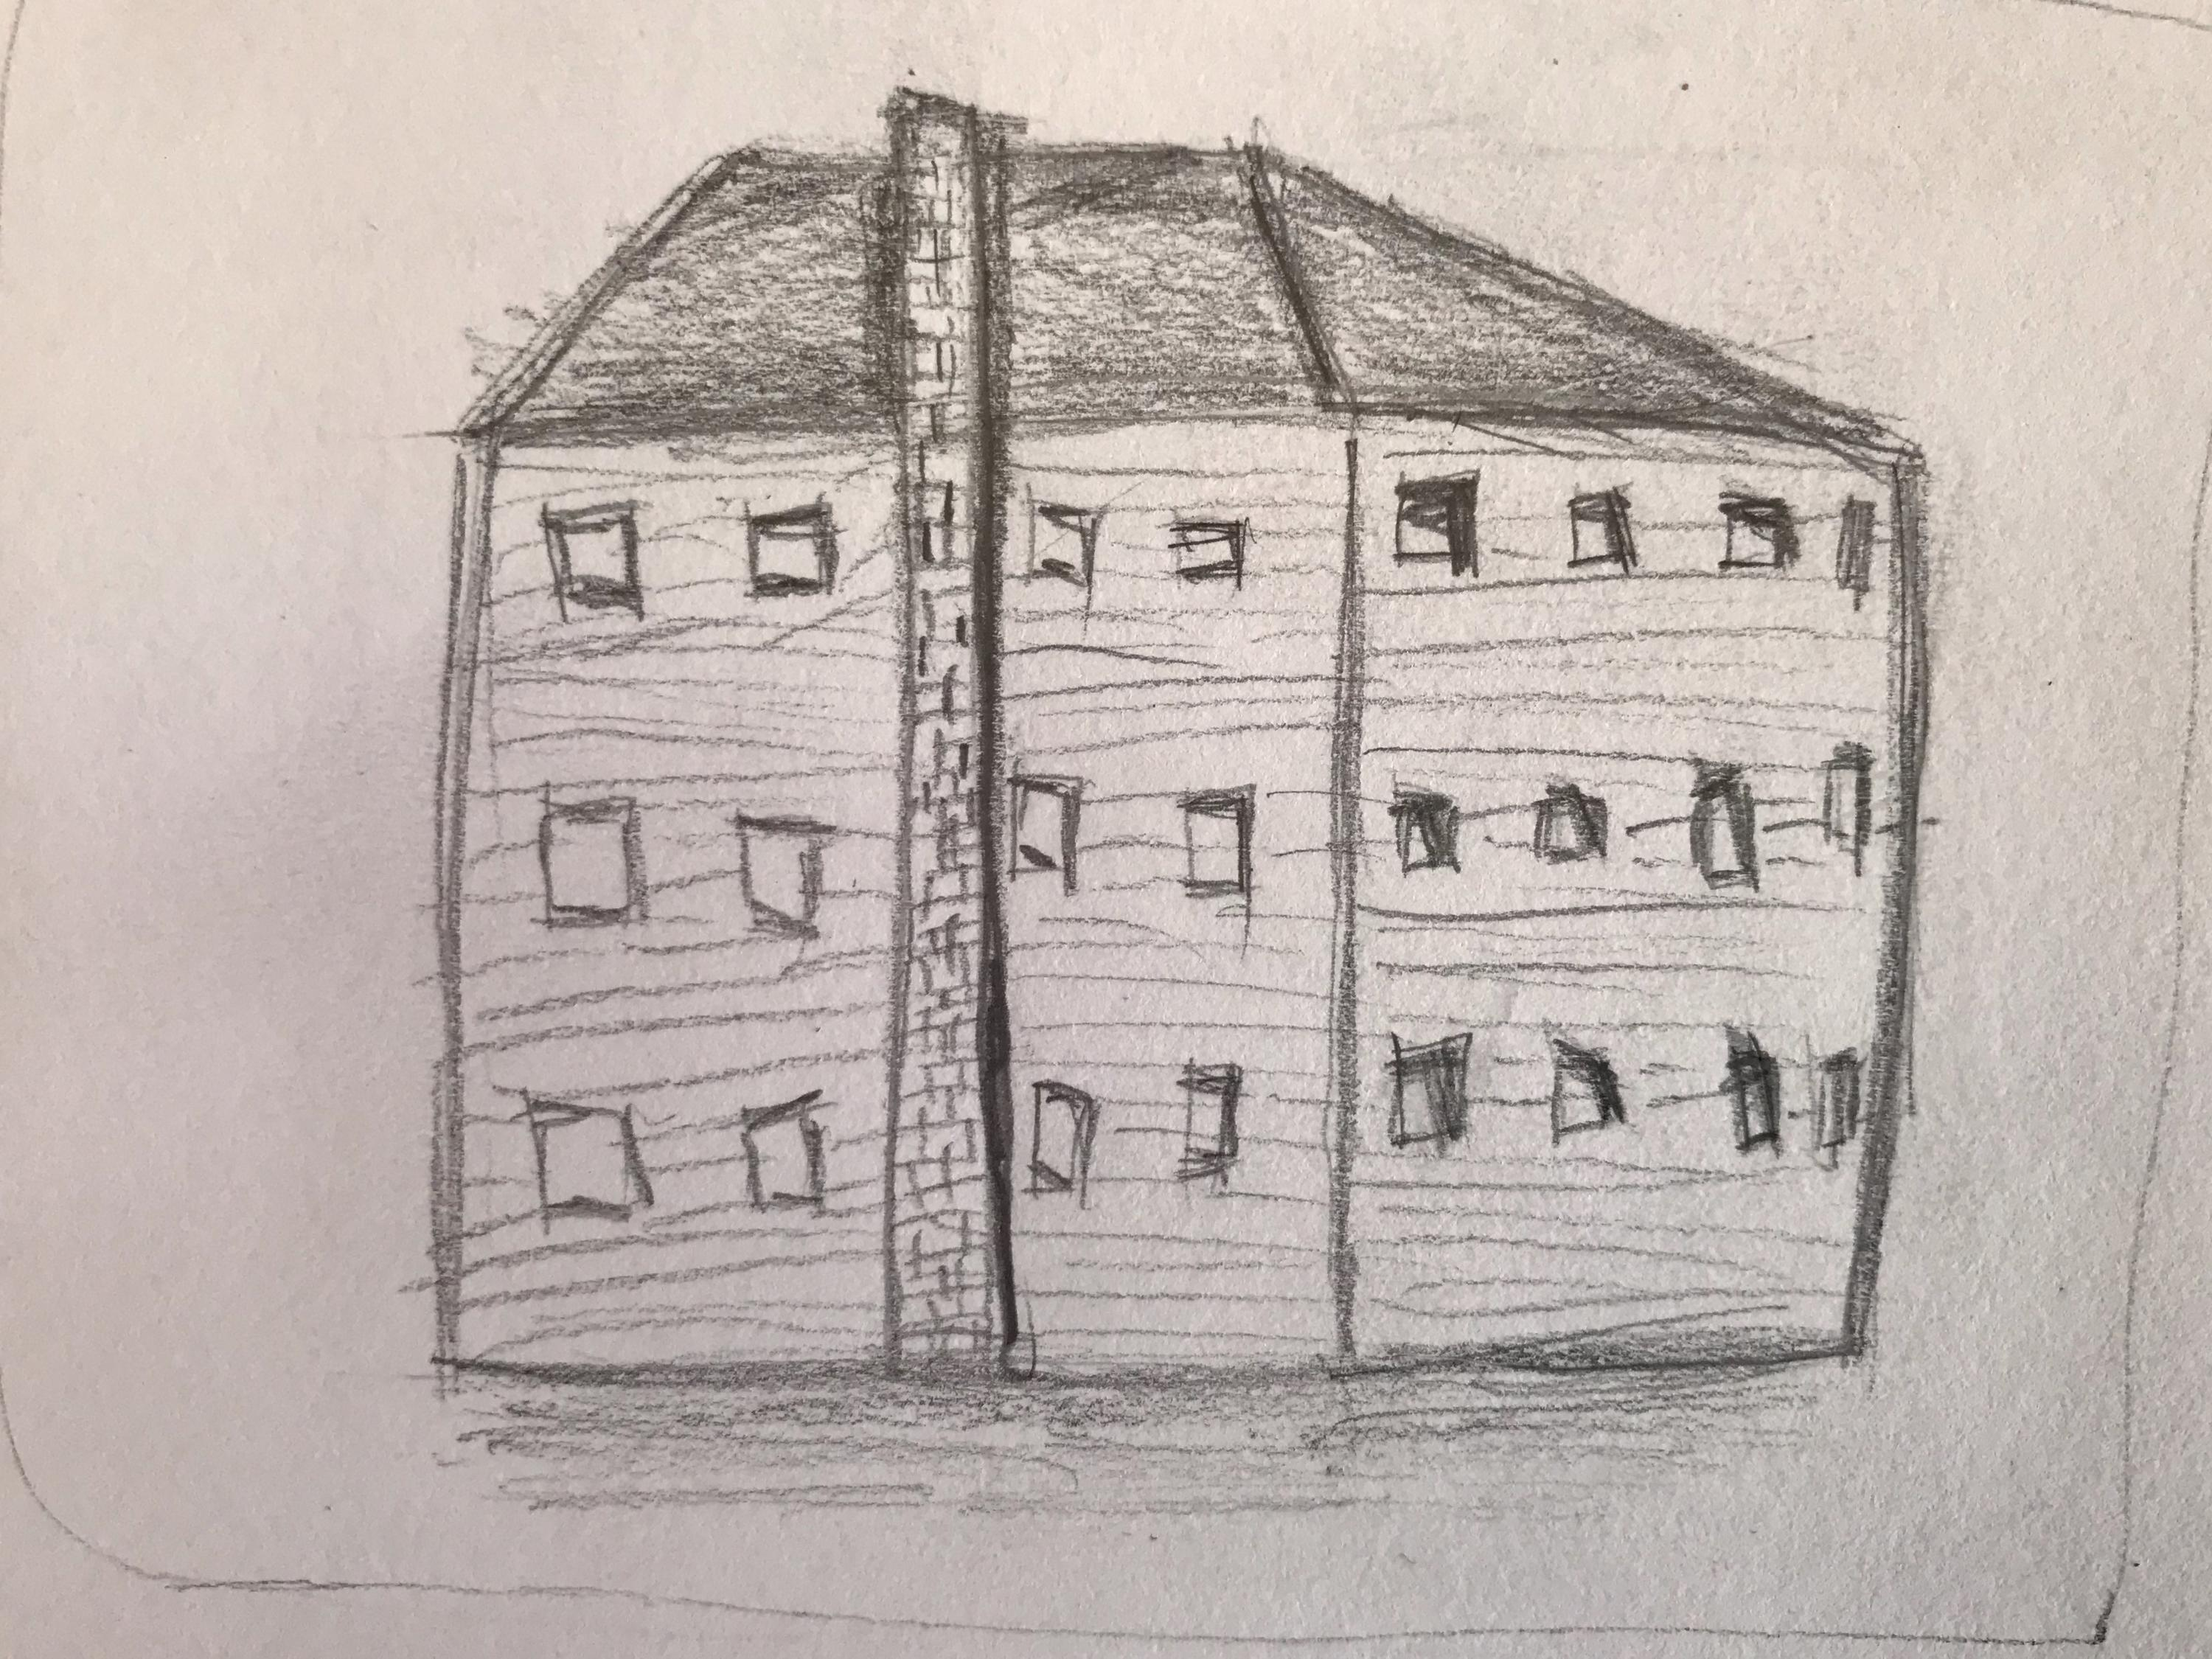 A drawing created by an Art Club member of a building